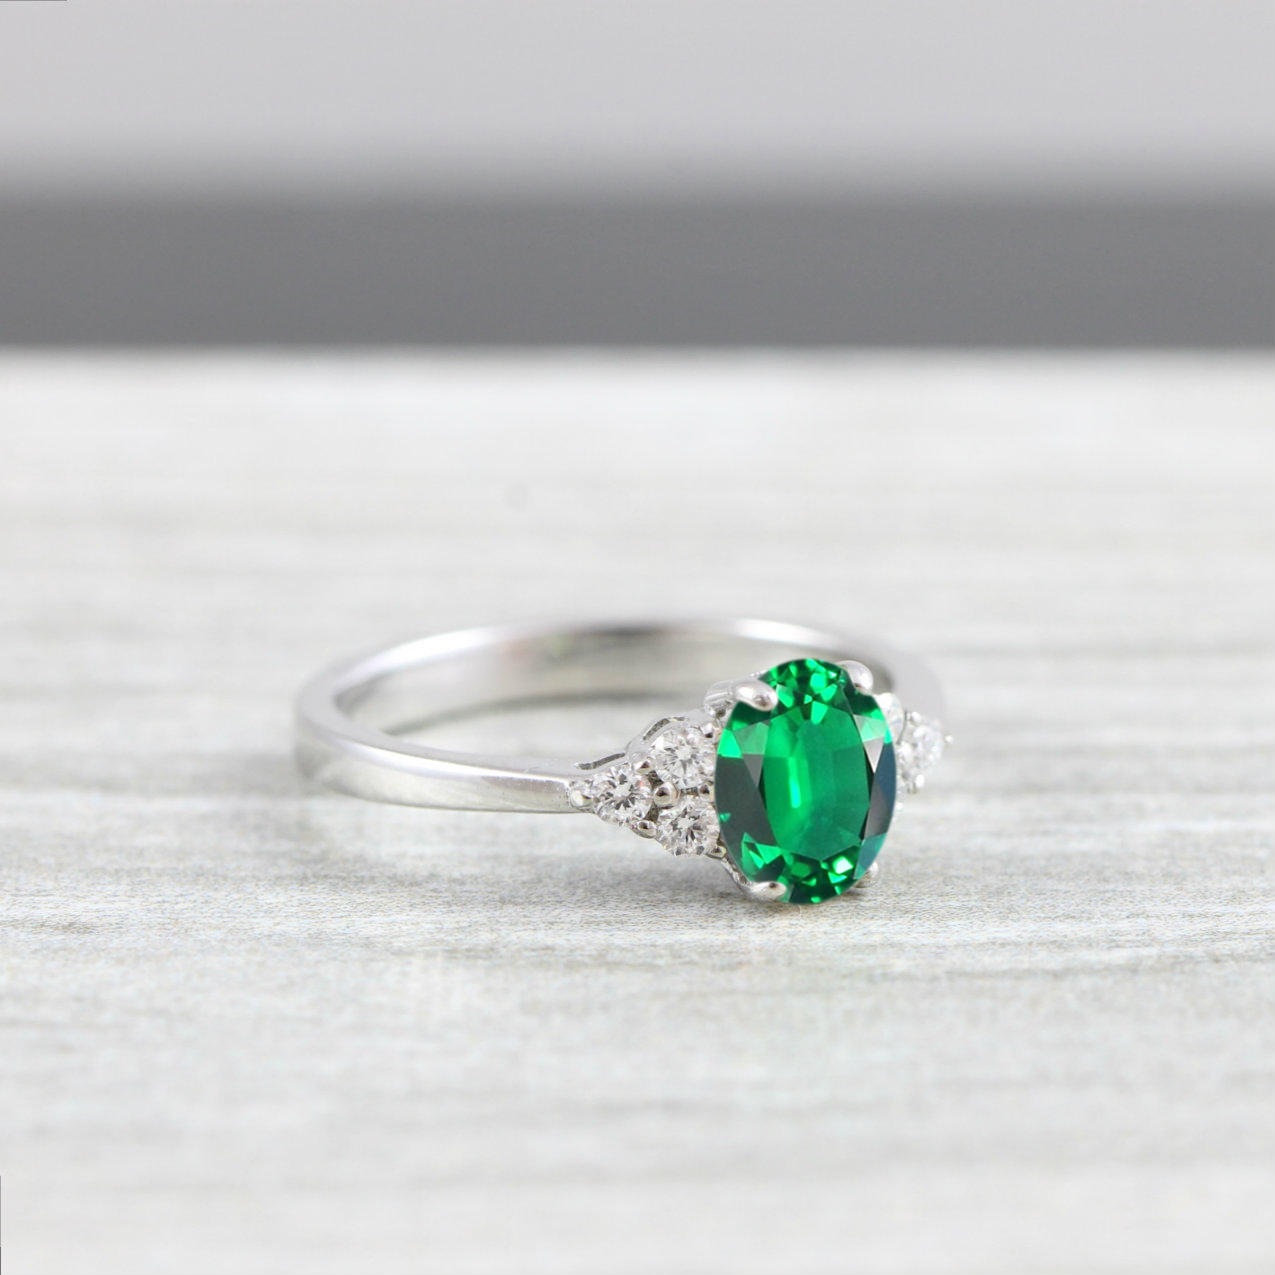 4a214f0293fba Lab created Emerald and Diamond oval engagement ring in white/rose/yellow  gold for her handmade ring UK